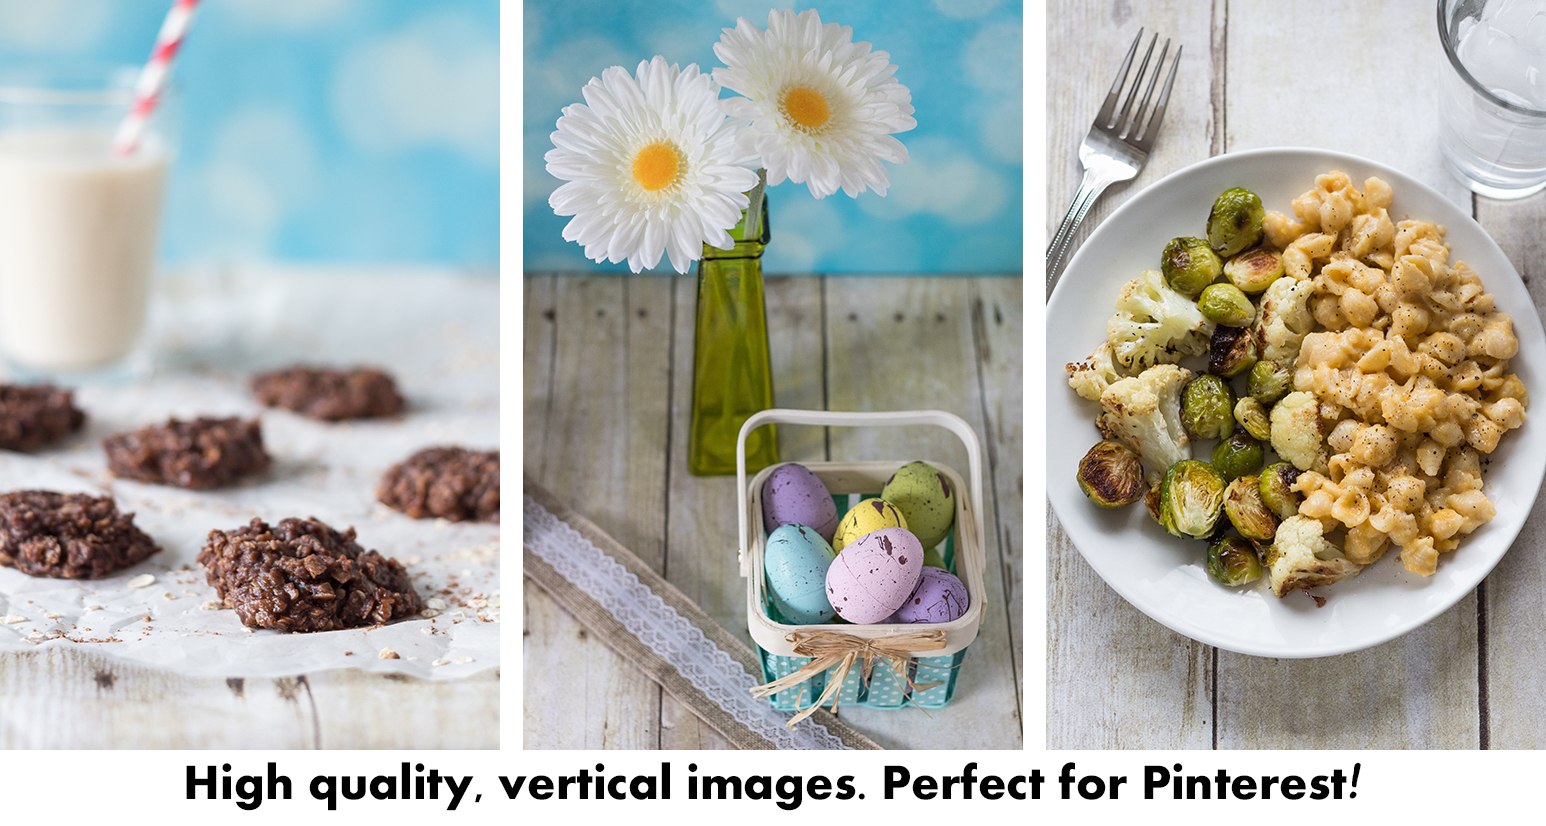 Pinterest Sharing Tips - Select High Quality, Vertical Images | http://www.roseclearfield.com